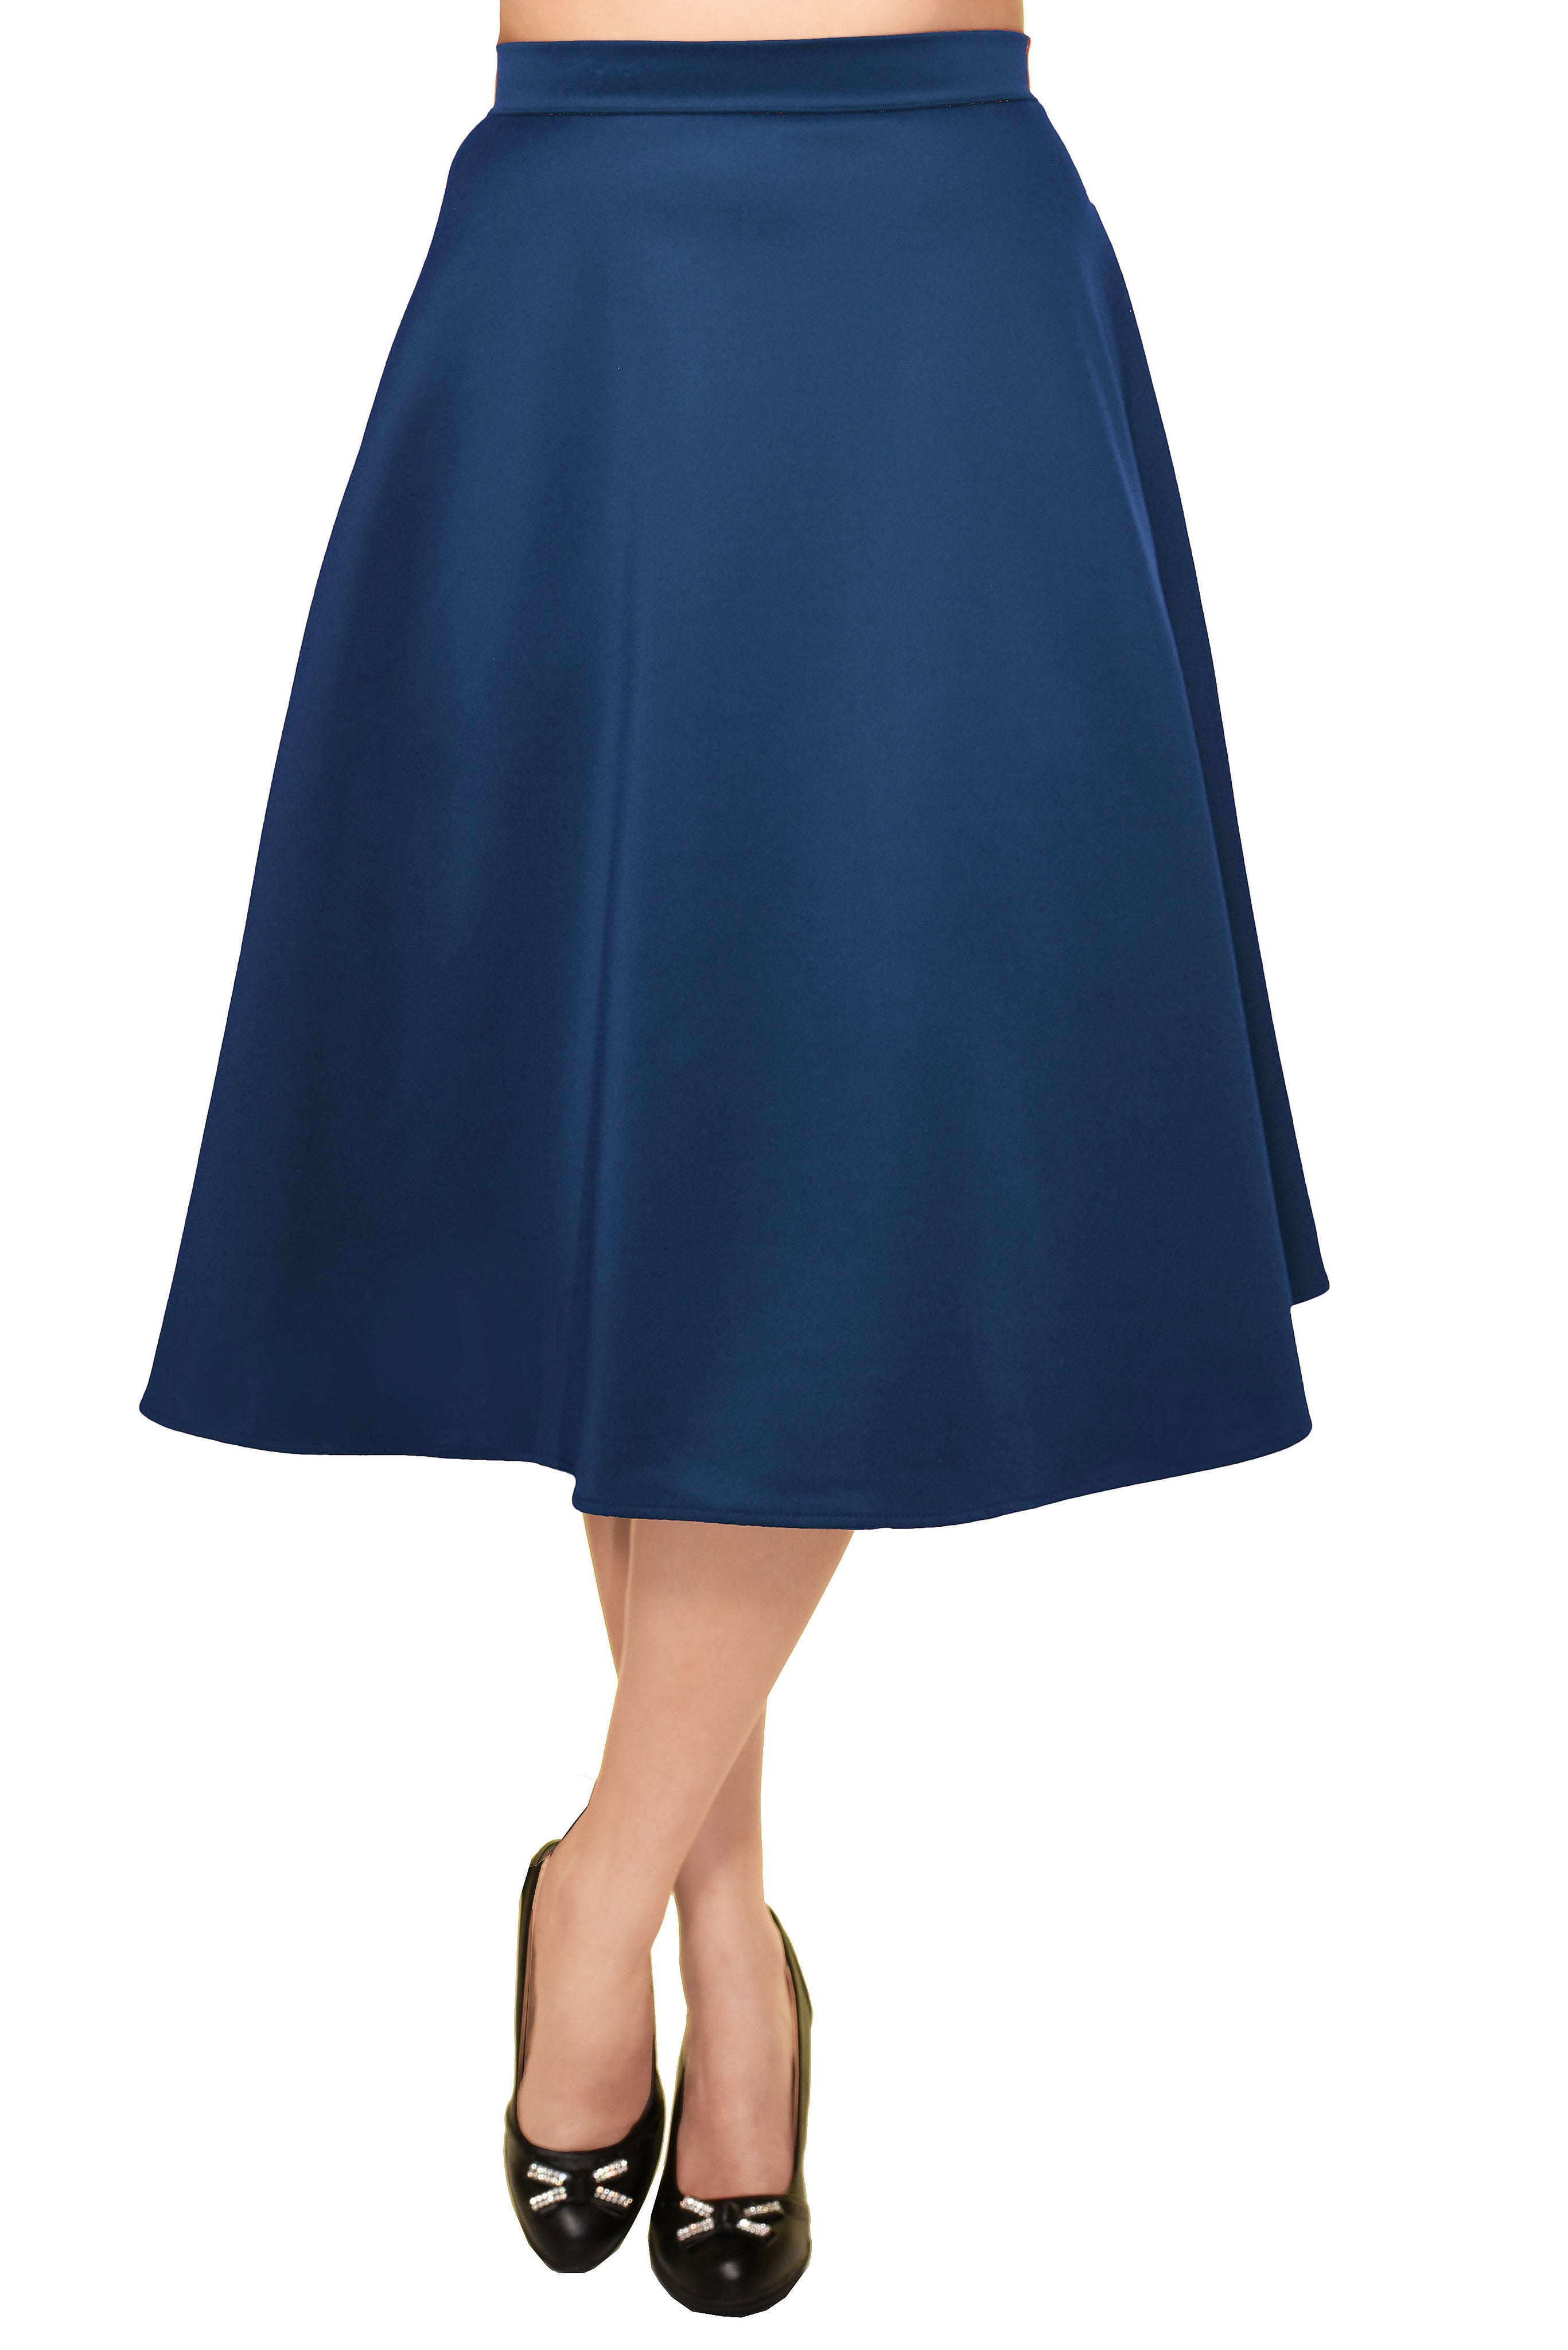 Avital Solid Full Aline Scuba Knit Midi Skirt | Teal Blue,Skirts,Avital - Discount Divas